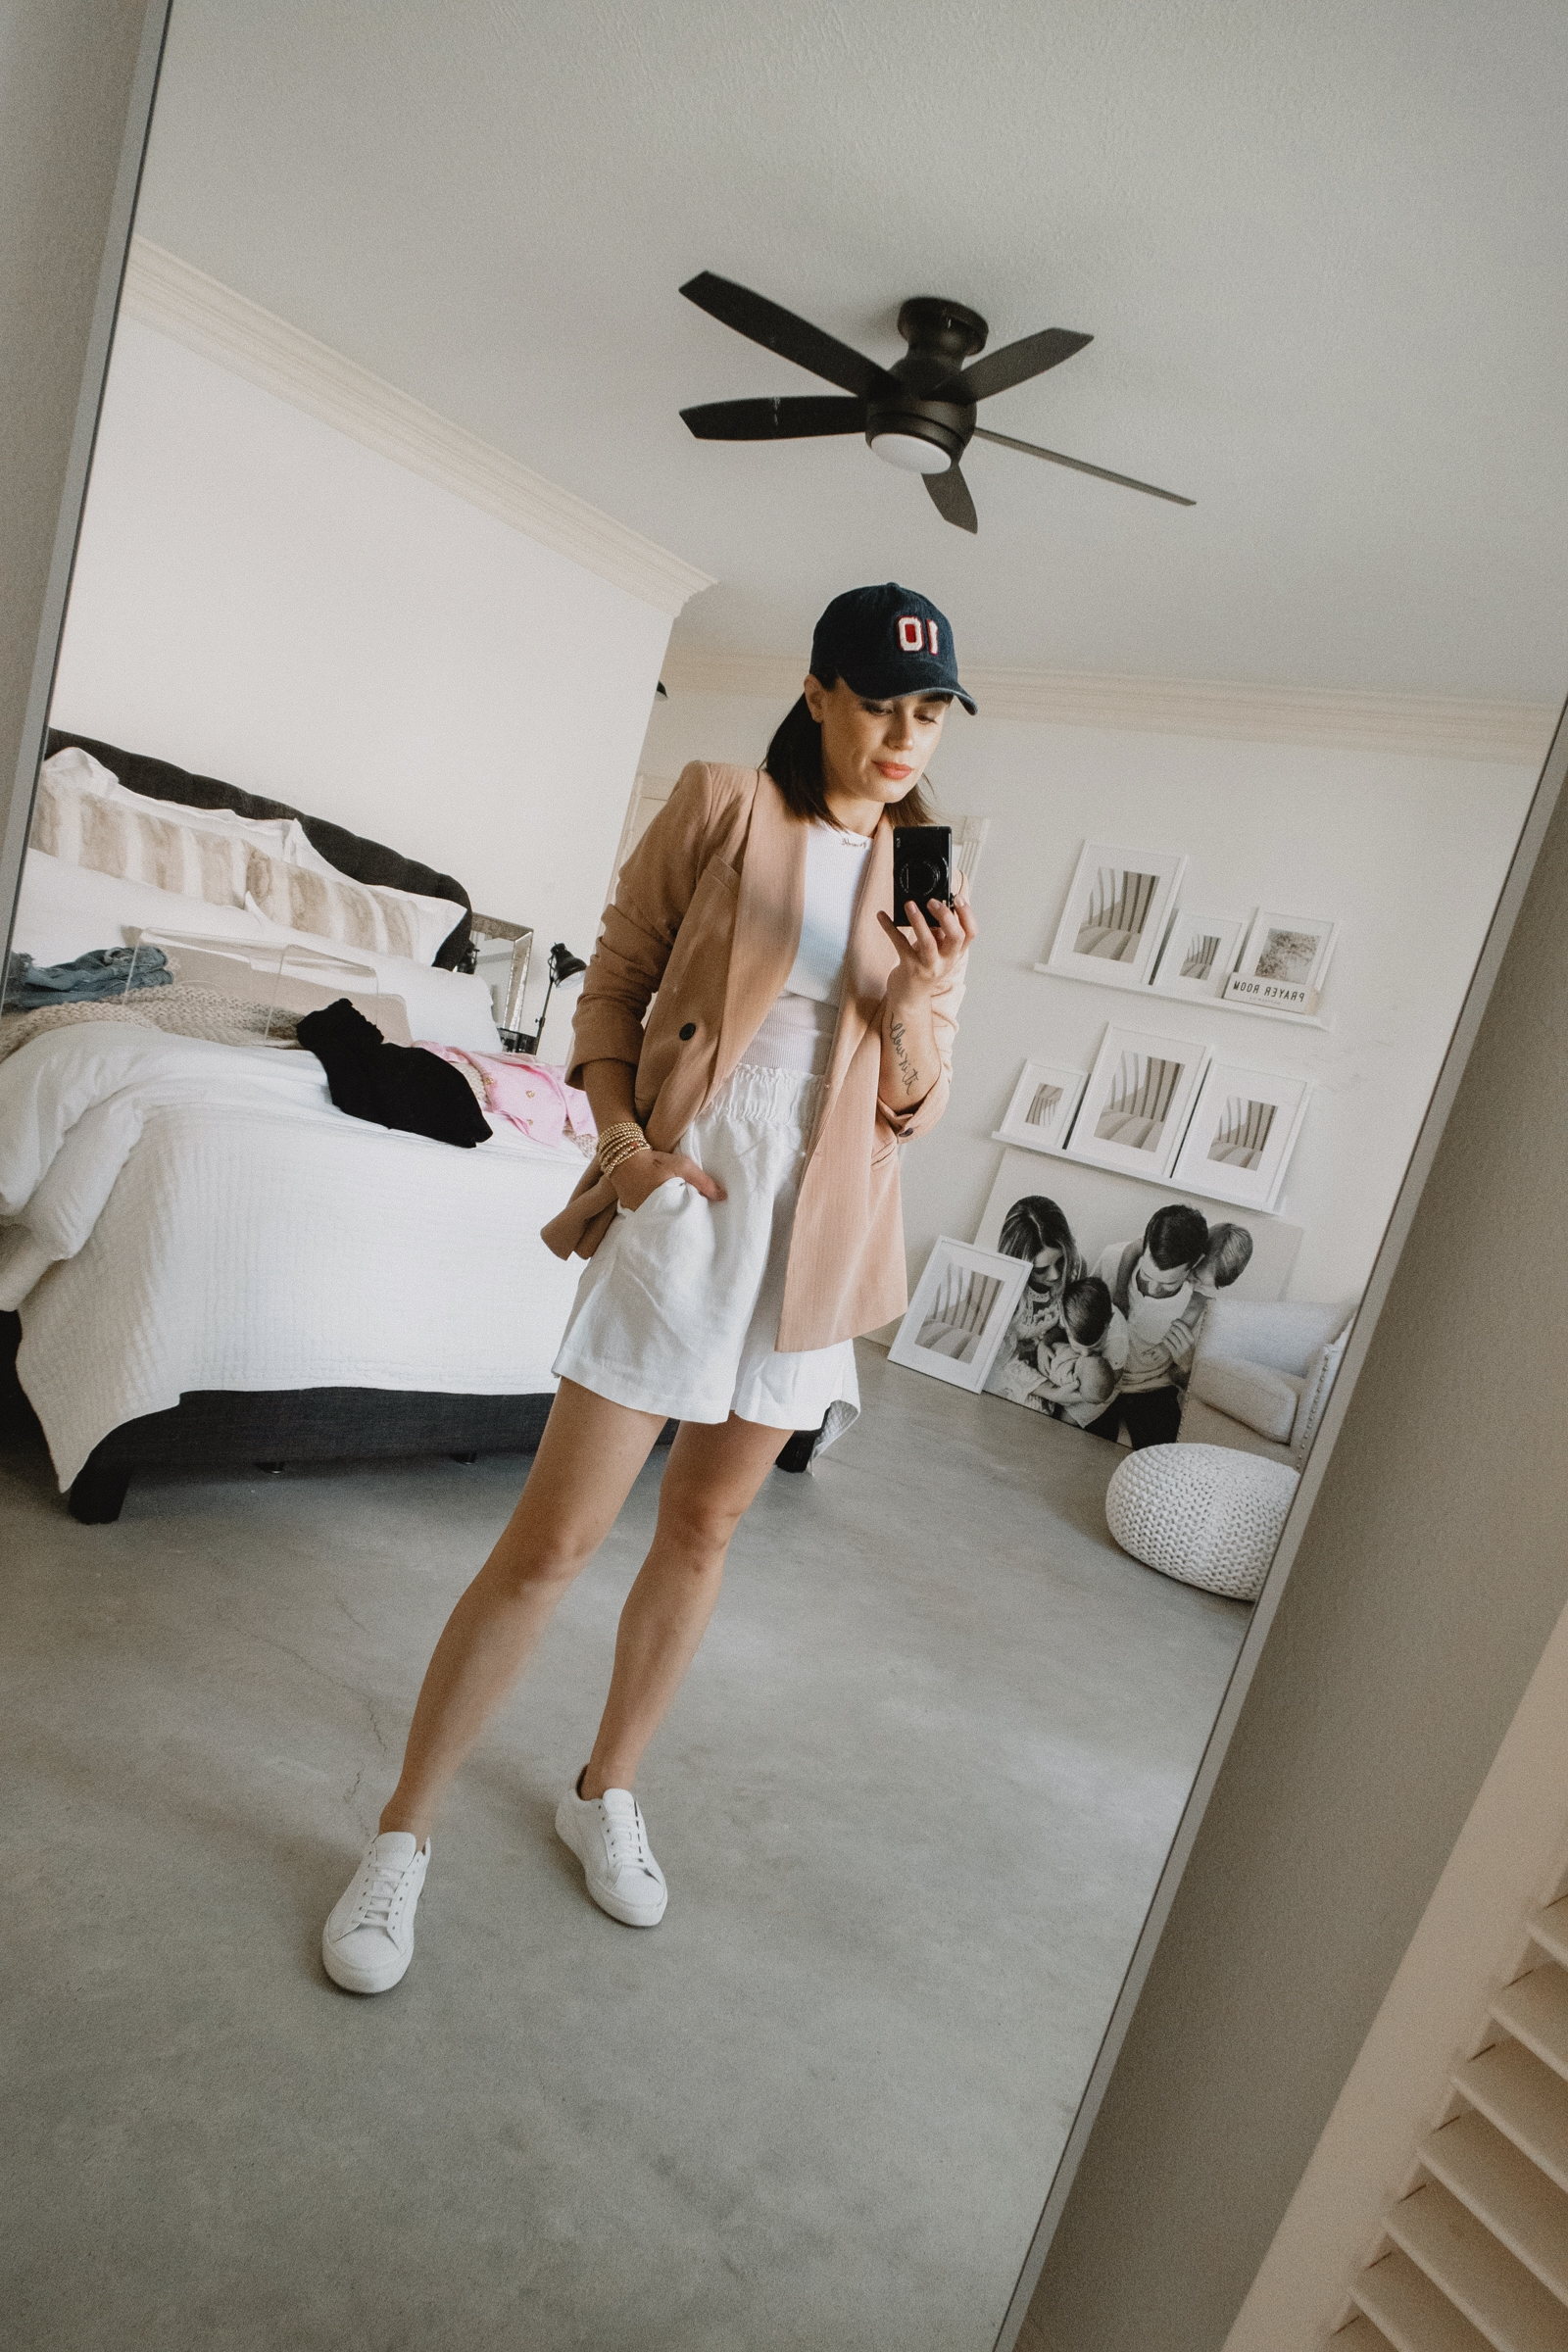 Elly Brown styles linen shorts with a tan blazer and baseball cap outfit